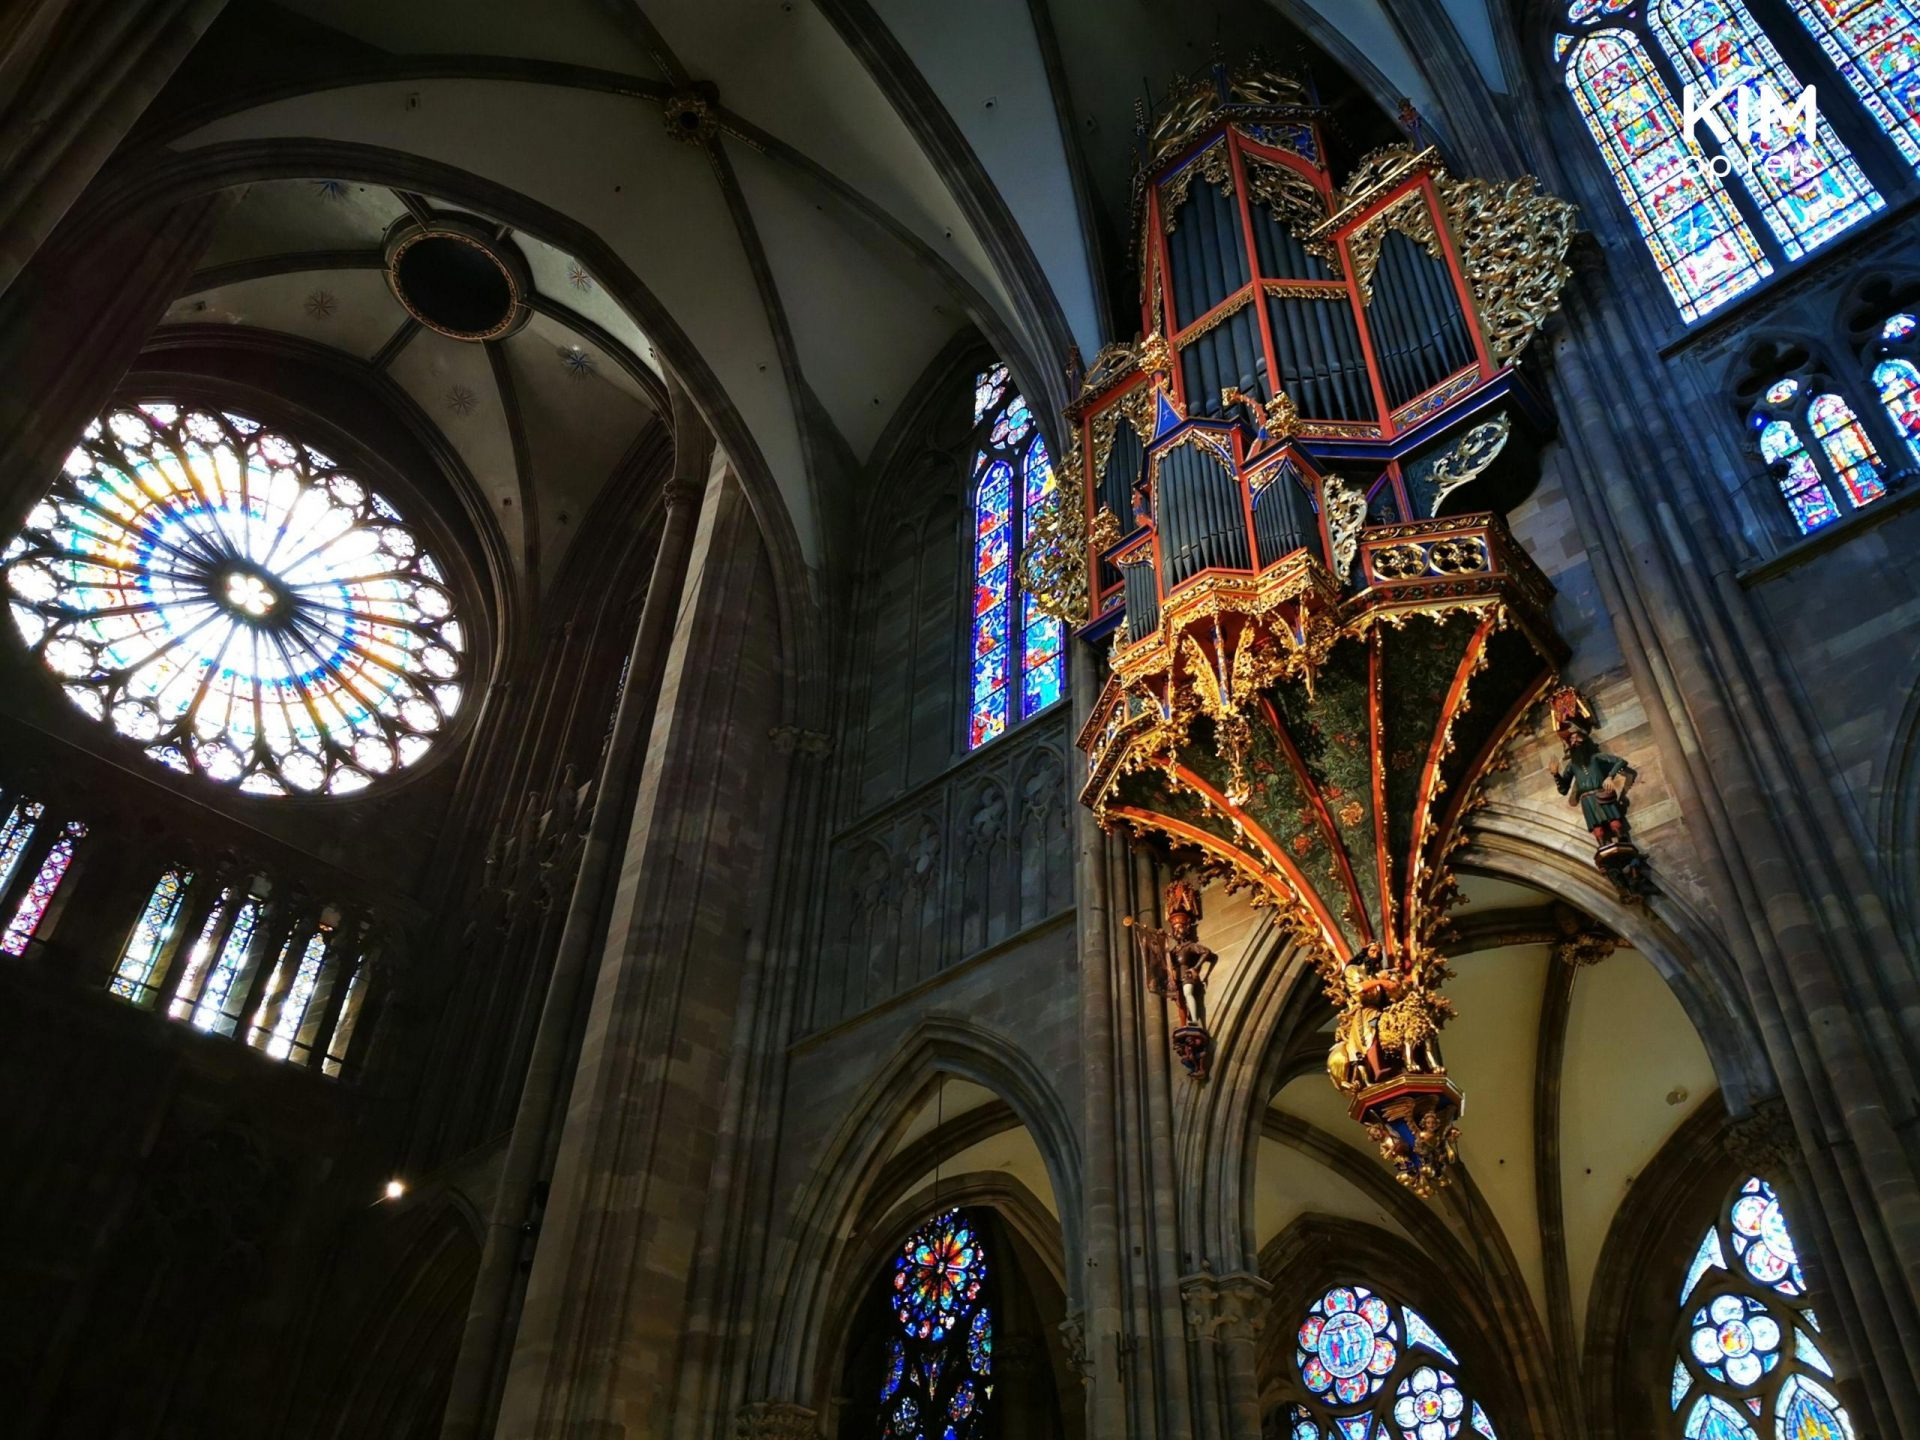 Organ in the Strasbourg cathedral